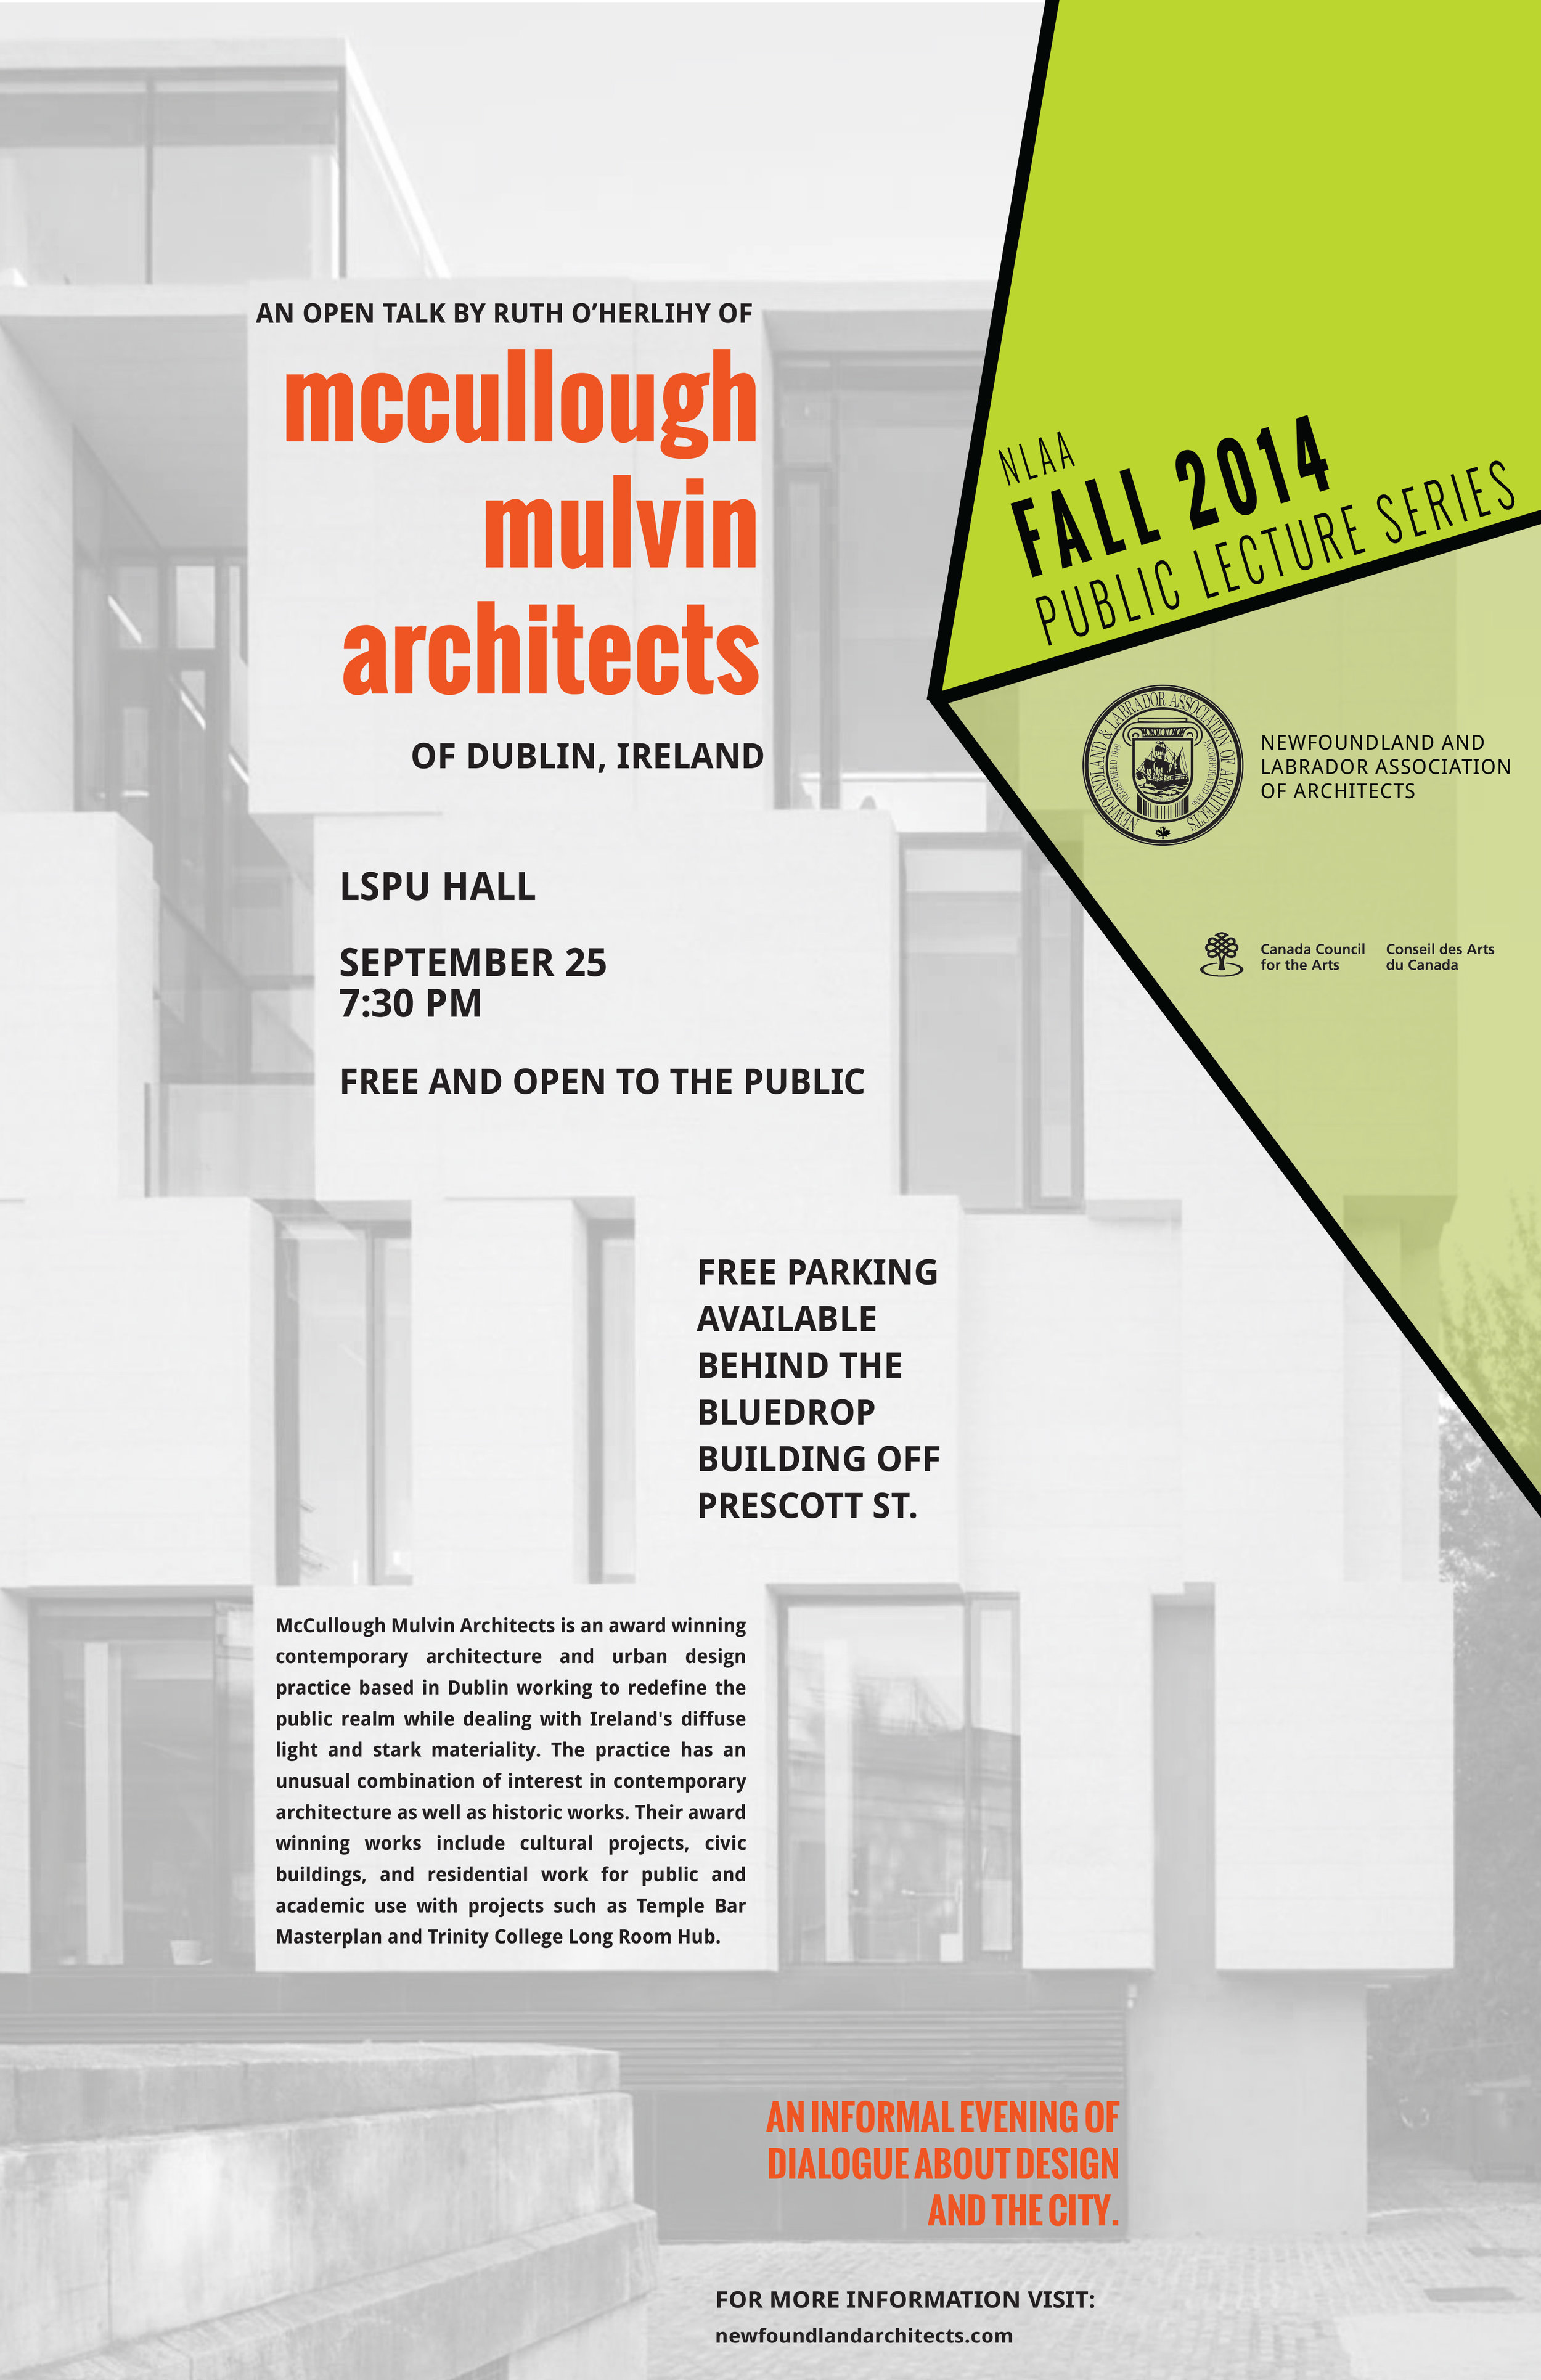 2014 mccullough mulvin architects poster.jpg